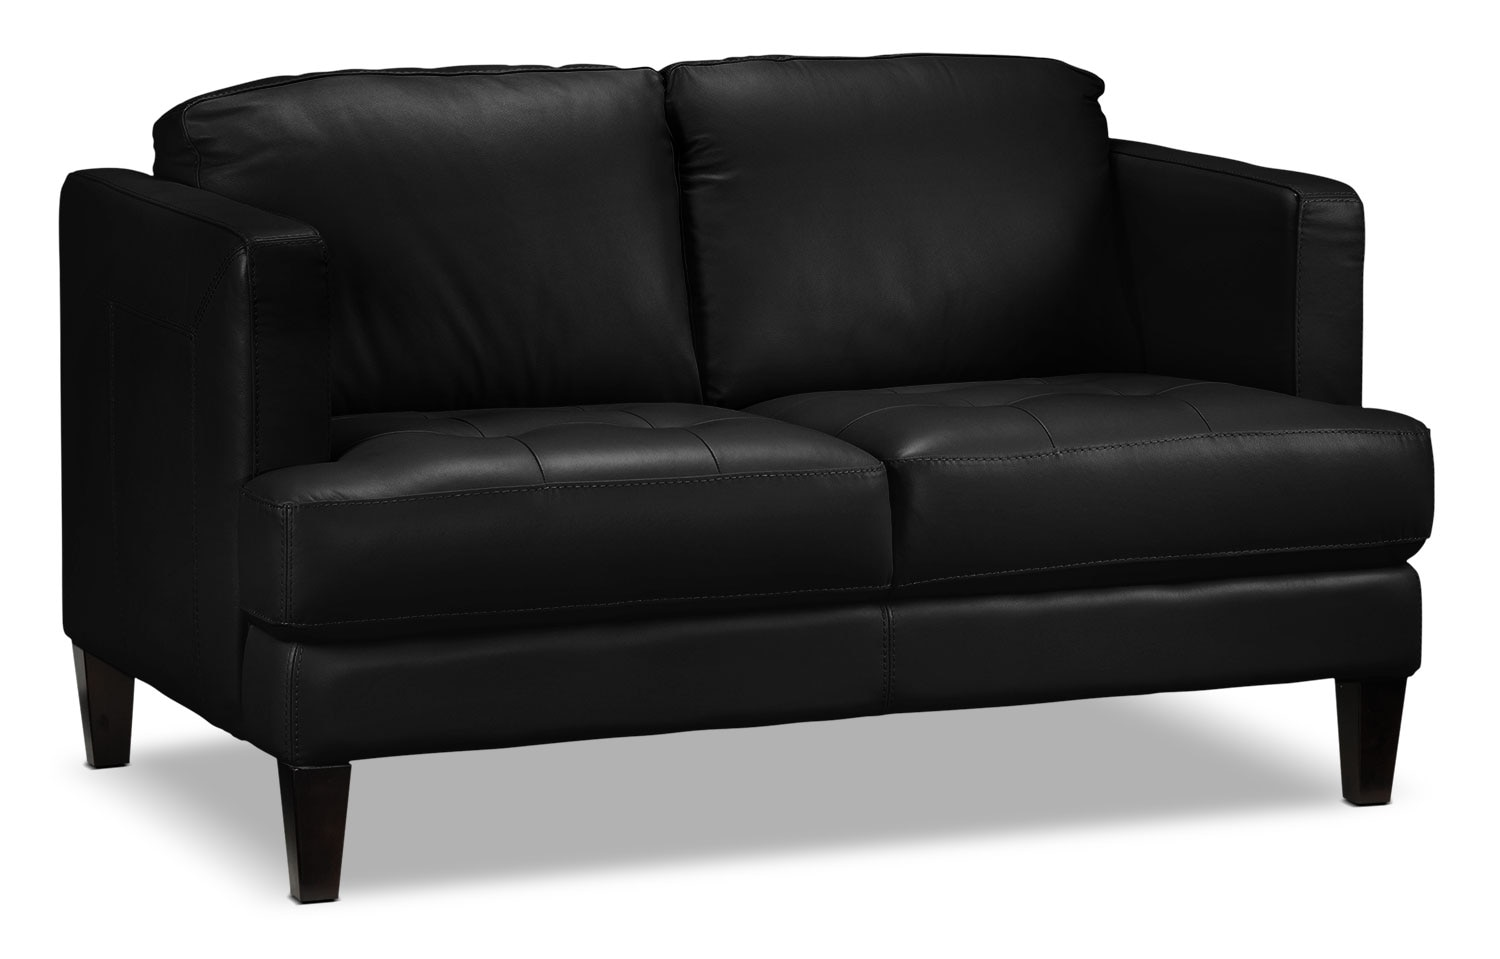 Living Room Furniture - Walker Loveseat - Black